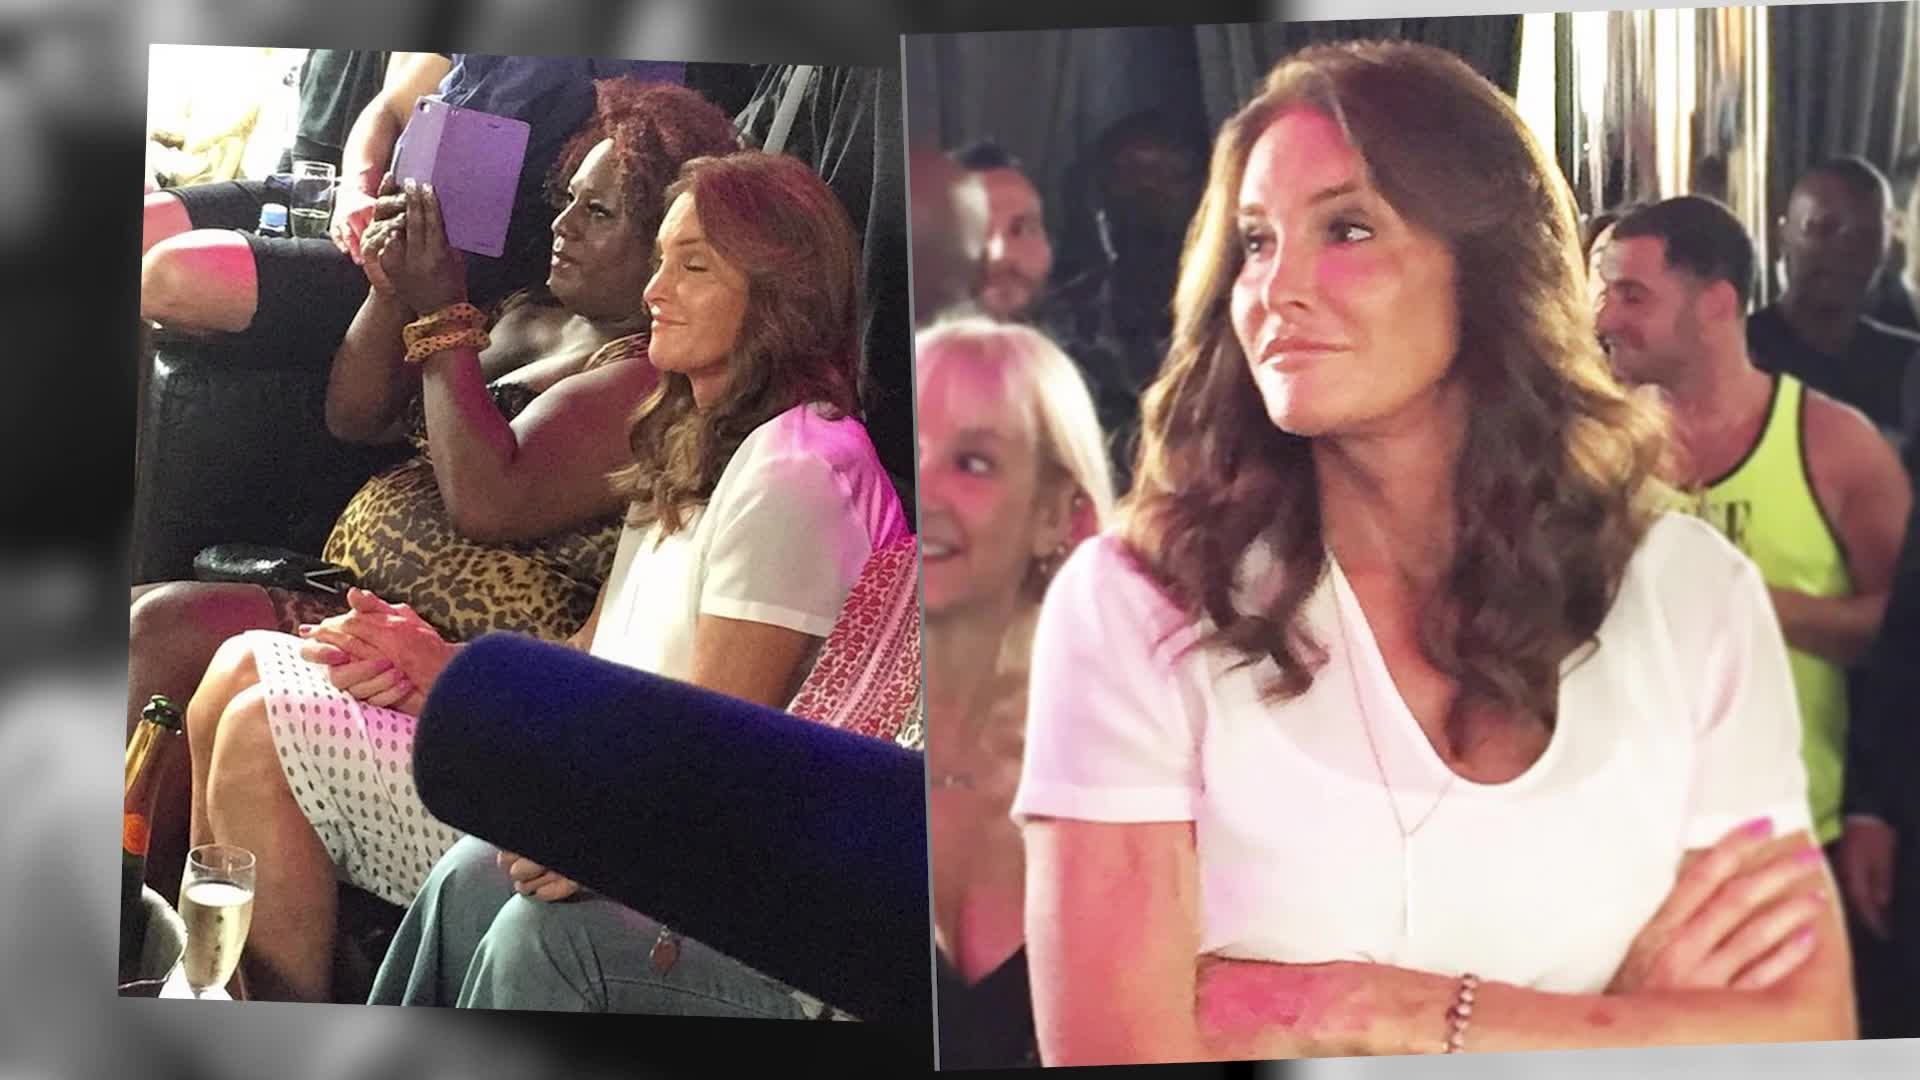 Caitlyn Jenner Makes First Public Appearance For Pride